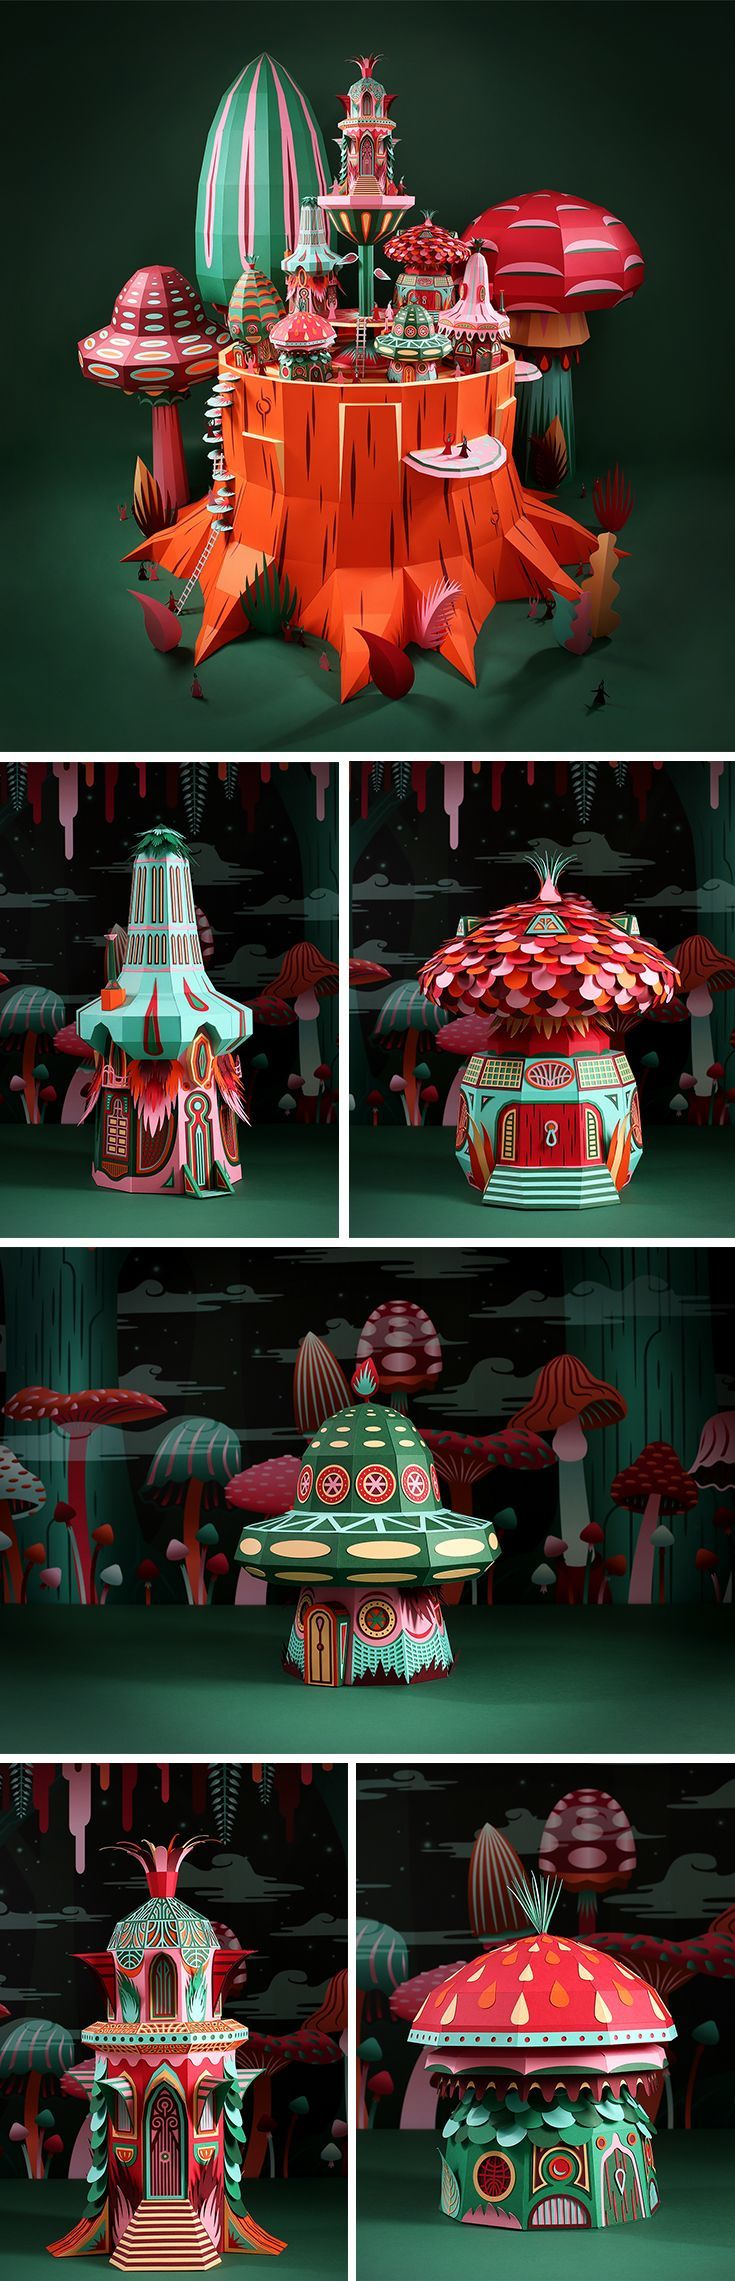 Color art dubai - Fantastic Miniature Worlds Bursting With Color For Herm S Window Display In Dubai By The French Duo Zim And Zou